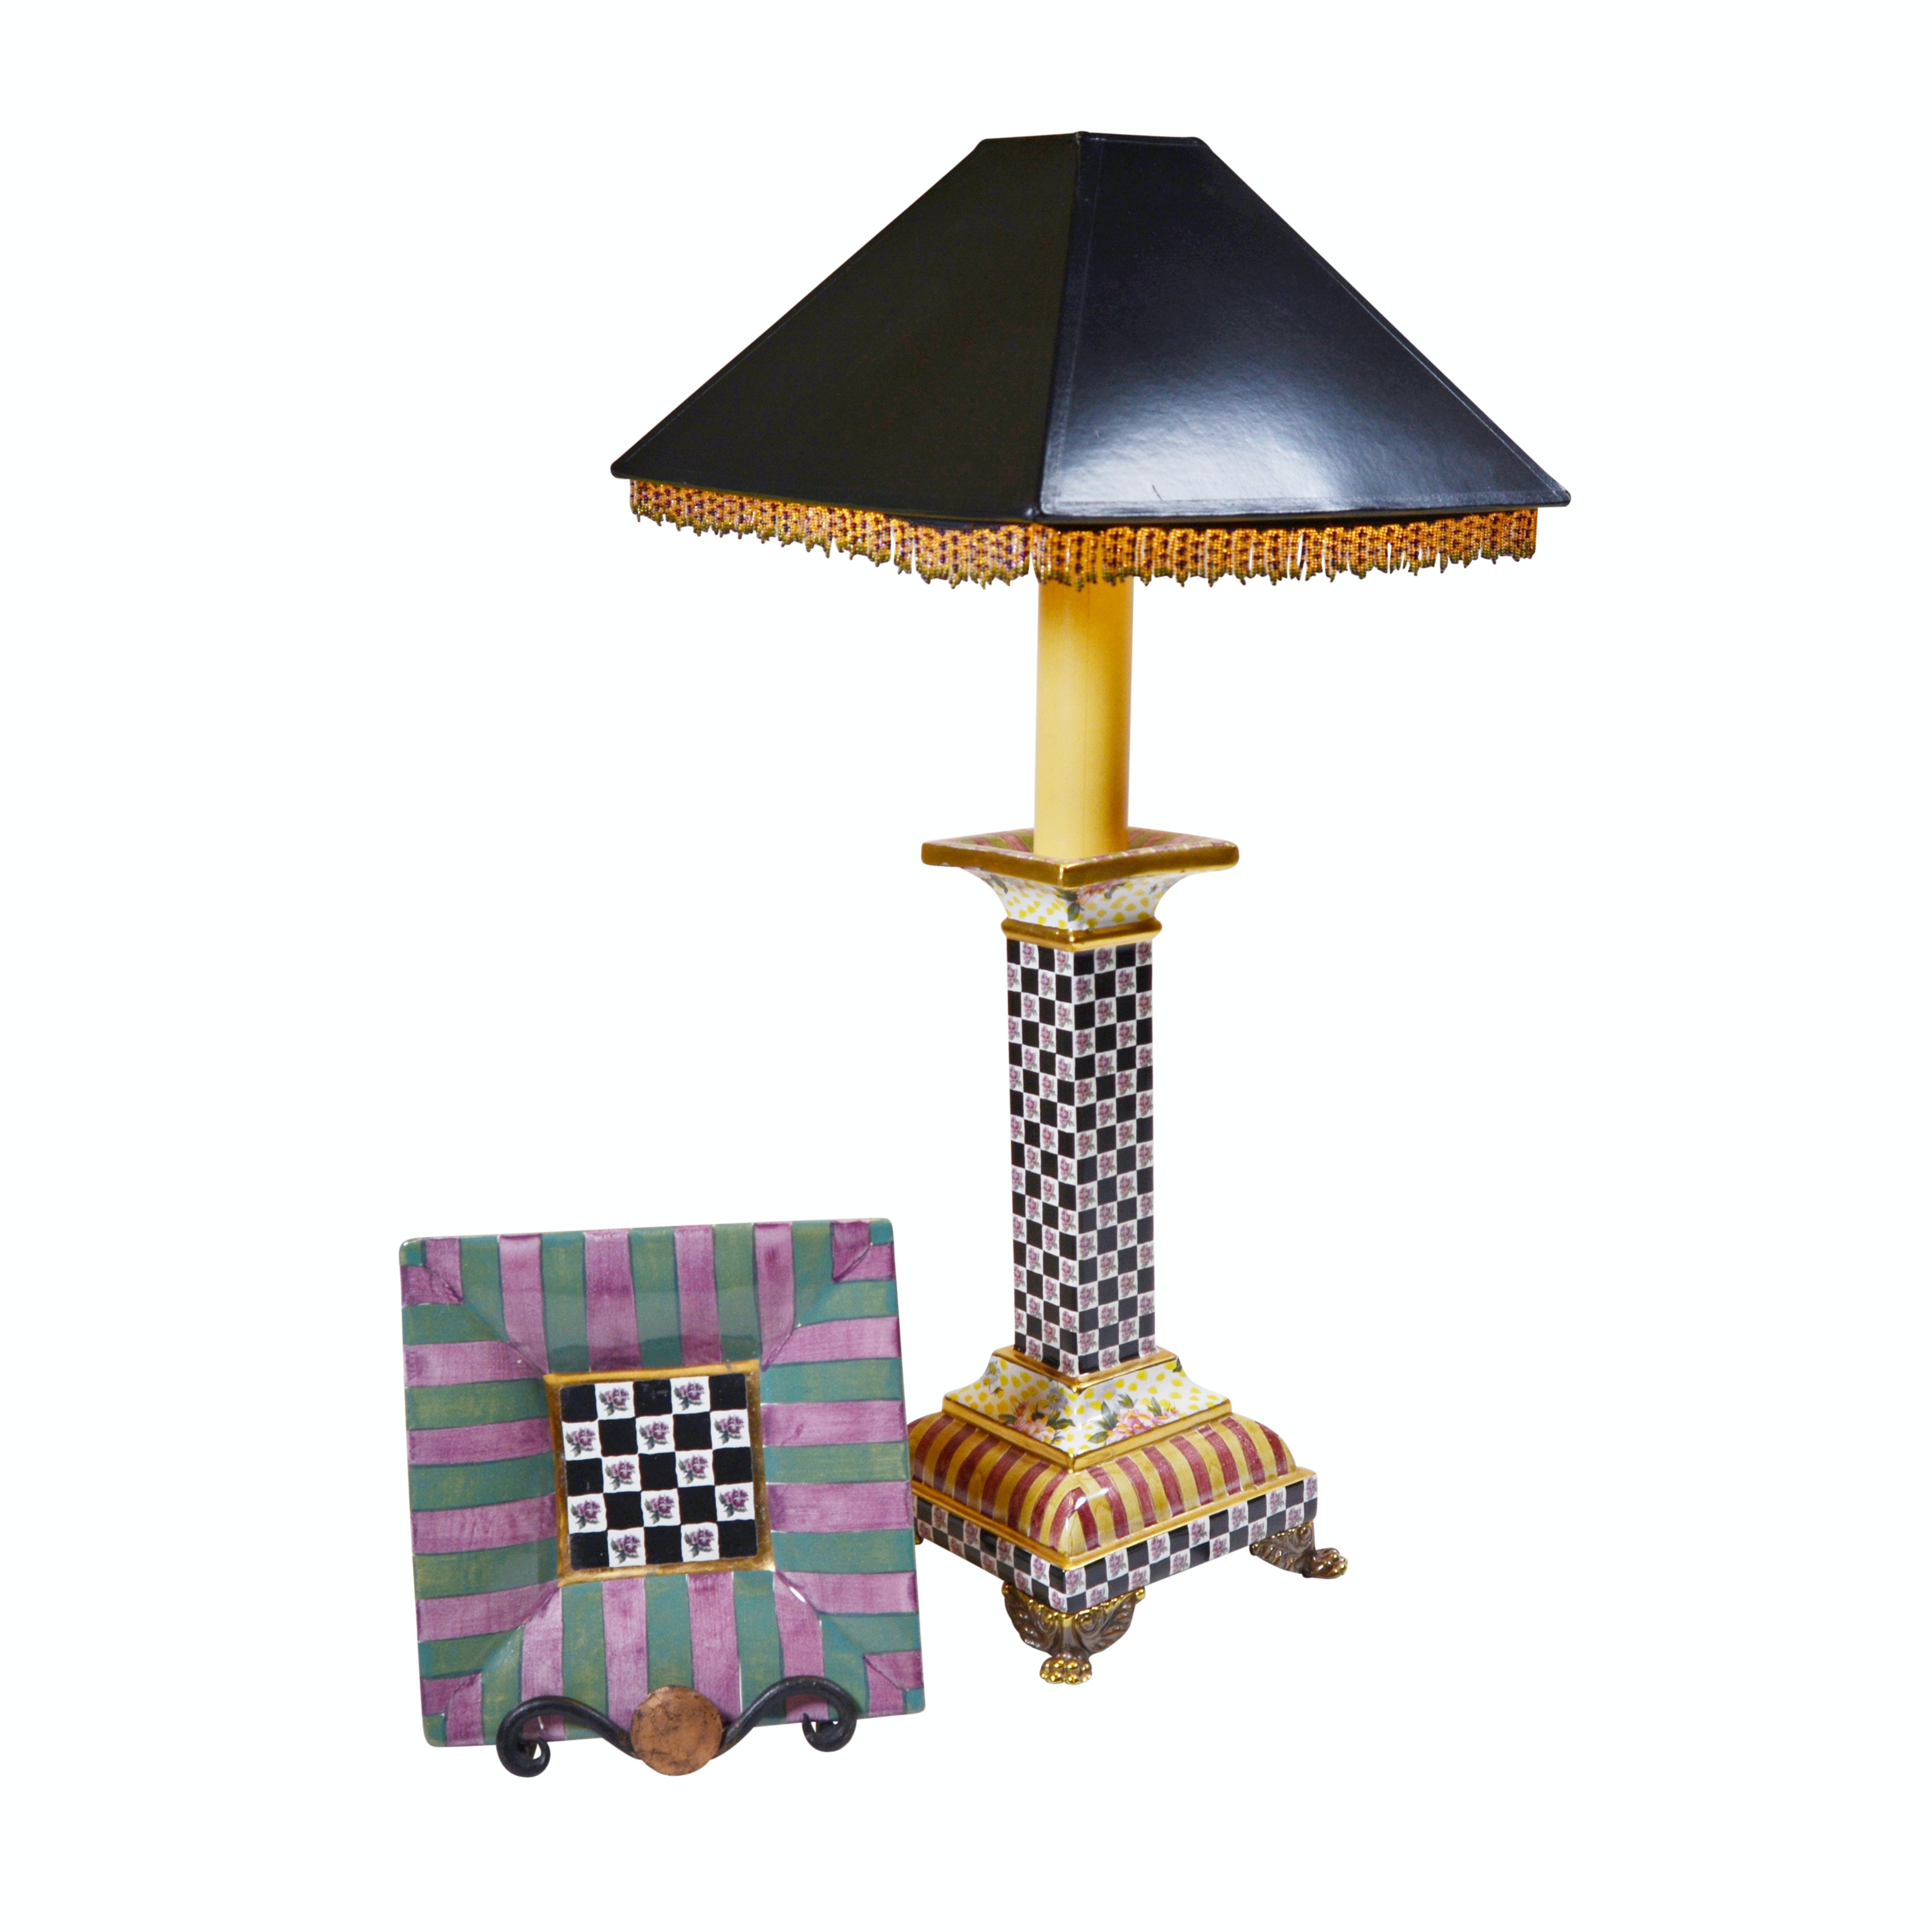 MacKenzie-Childs Torquay Table Lamp and Plate